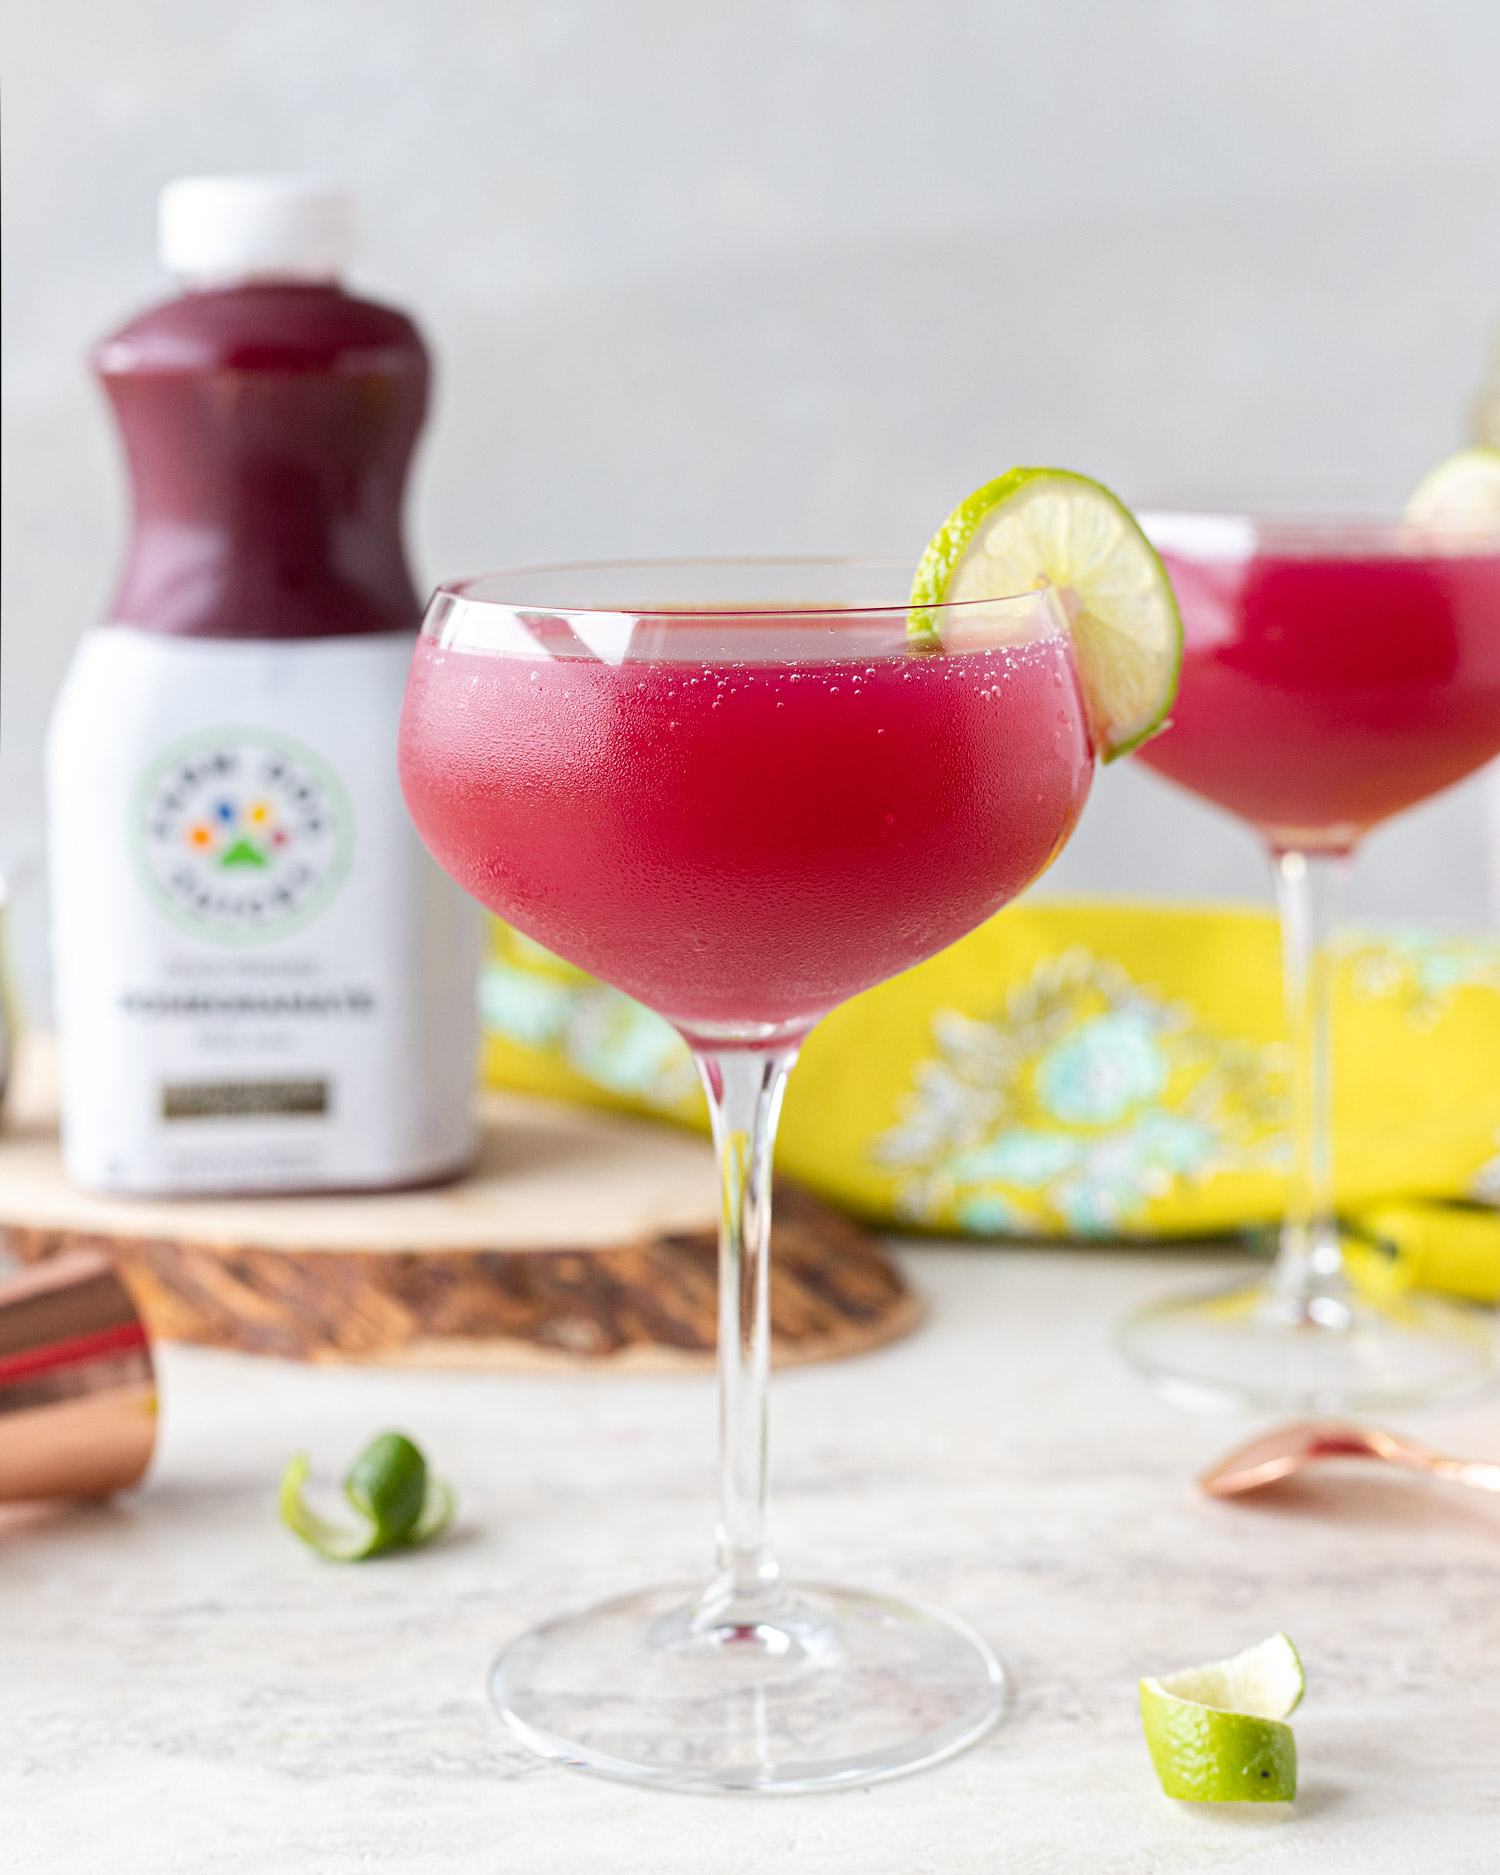 Pomegranate Gimlet mocktail made with Farm Dog Juices Pomegranate Juice that is now at H-E-B. This non-alcoholic cocktail recipe is tart and sweet for a drink that's perfect all year long. ElleTalk #spons #Mocktail #MocktailRecipe #CocktailRecipe #ZeroAlcohol #LowABV #nonalcoholic